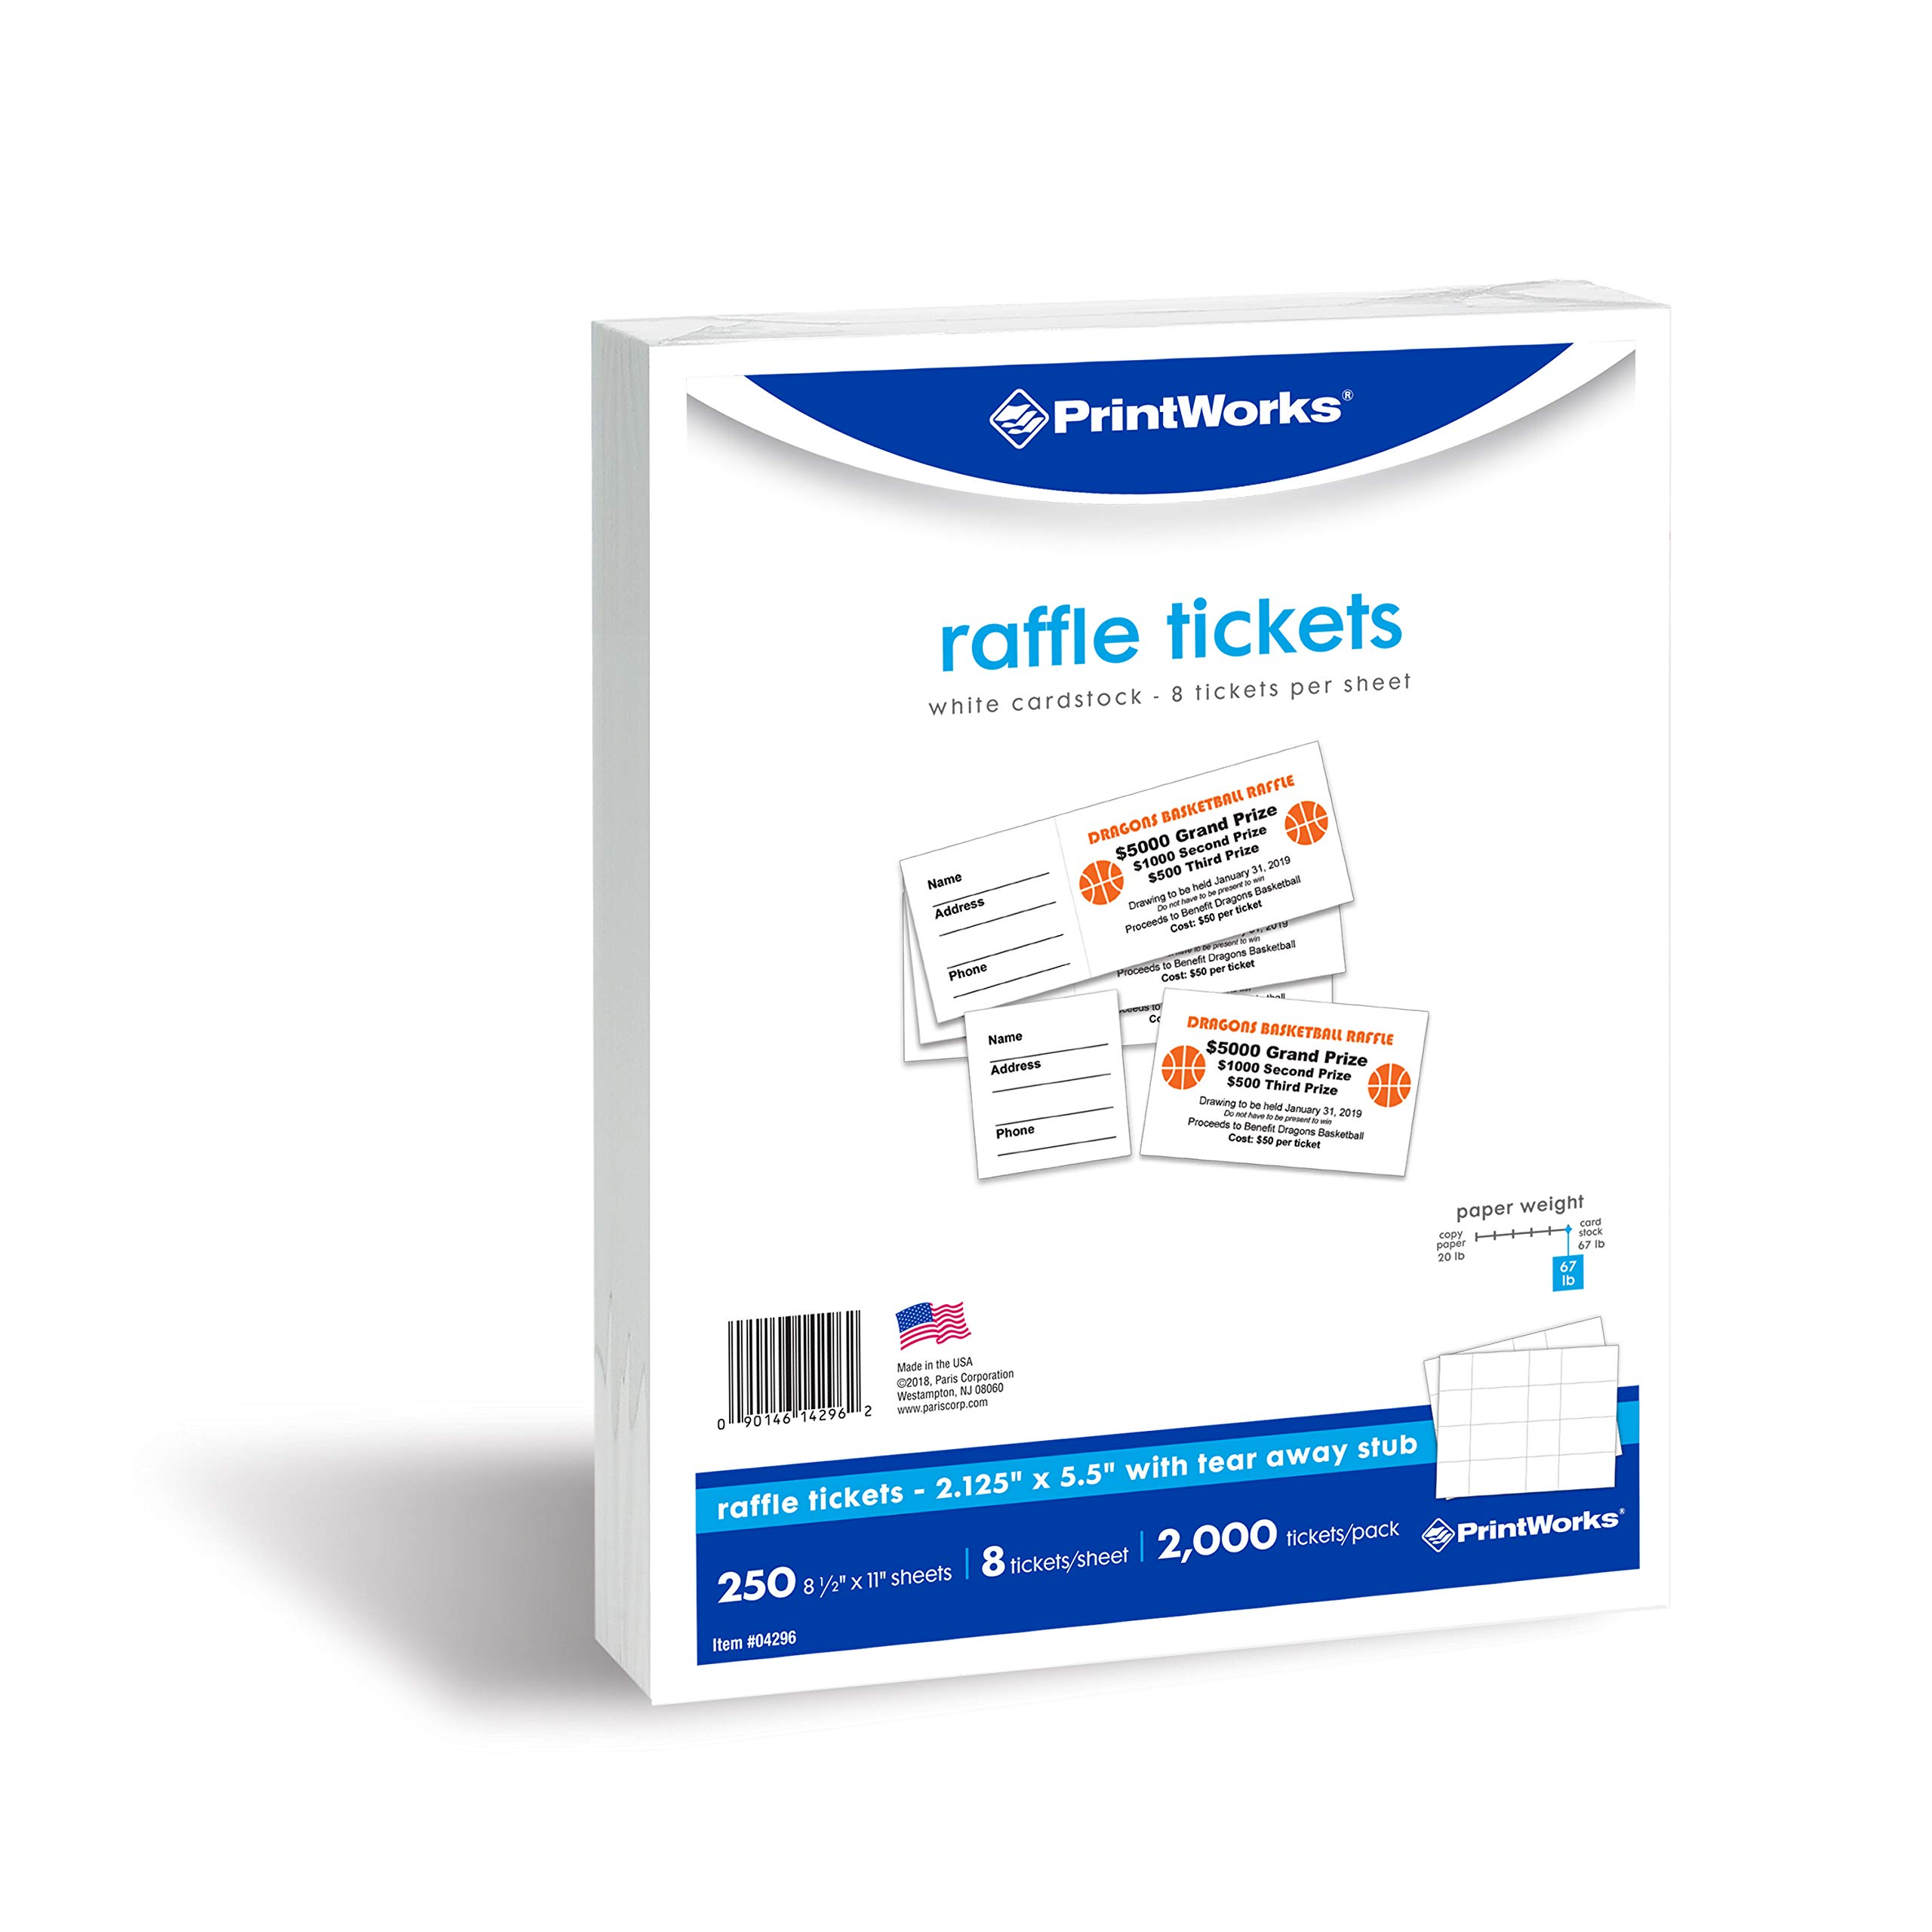 PrintWorks Heavyweight Perforated Cardstock for Raffle Tickets, Coupons, and More, Tear-Away Stubs, 8.5 x 11, 67 lb, 8 Tickets Per Sheet, 250 Sheets, 2000 Tickets Total, White (04296) (2.125 x 5.5) by PrintWorks